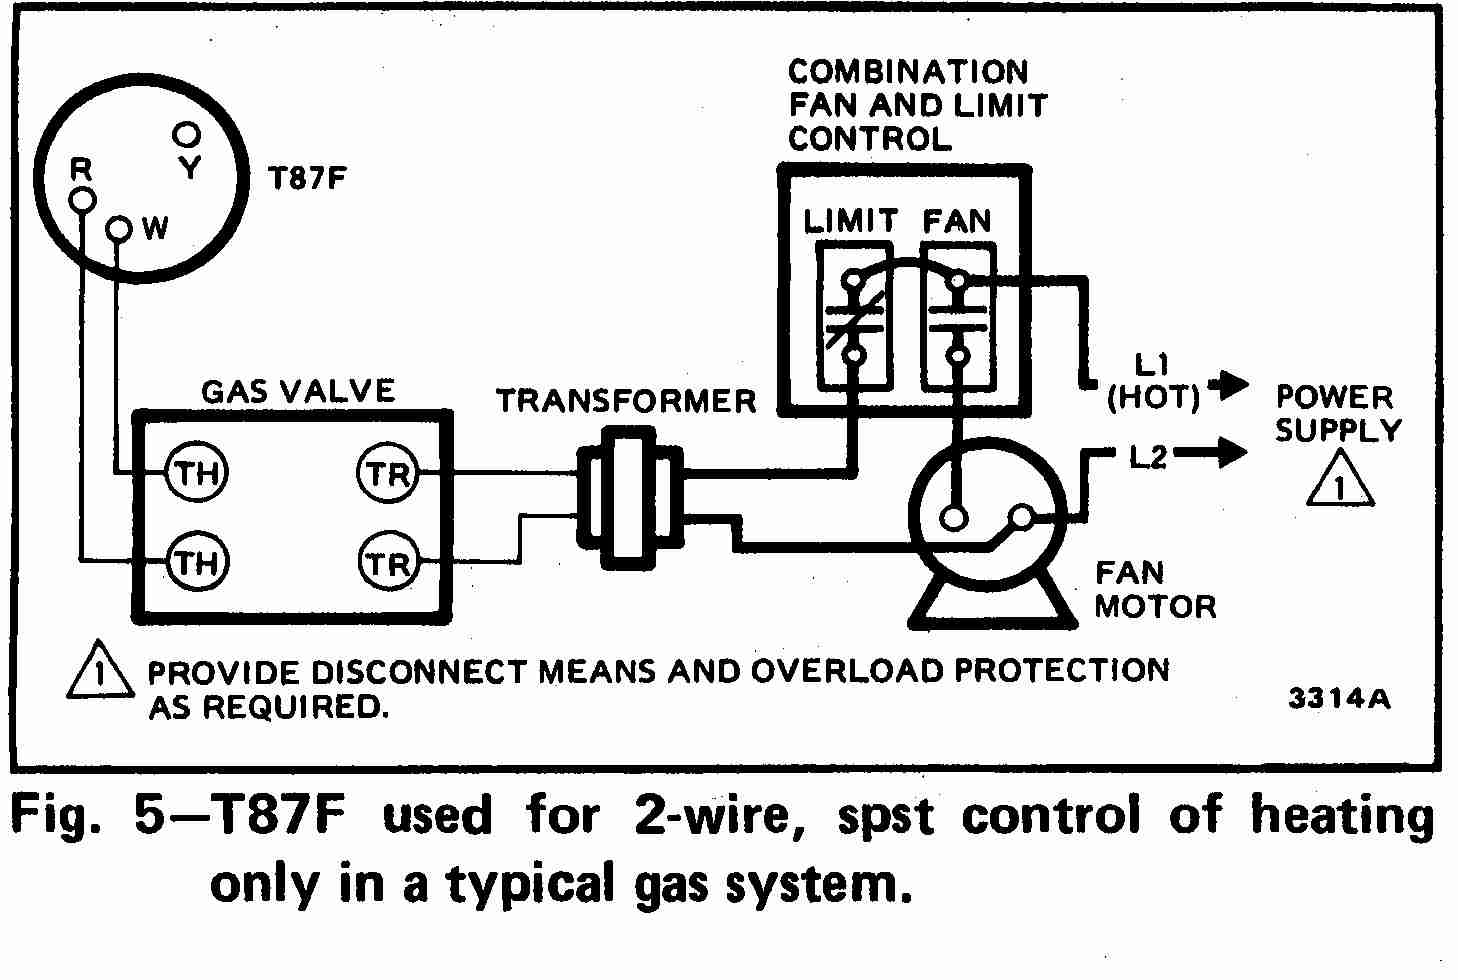 TT_T87F_0002_2Wg_DJF guide to wiring connections for room thermostats heating and air conditioning wiring diagrams at crackthecode.co